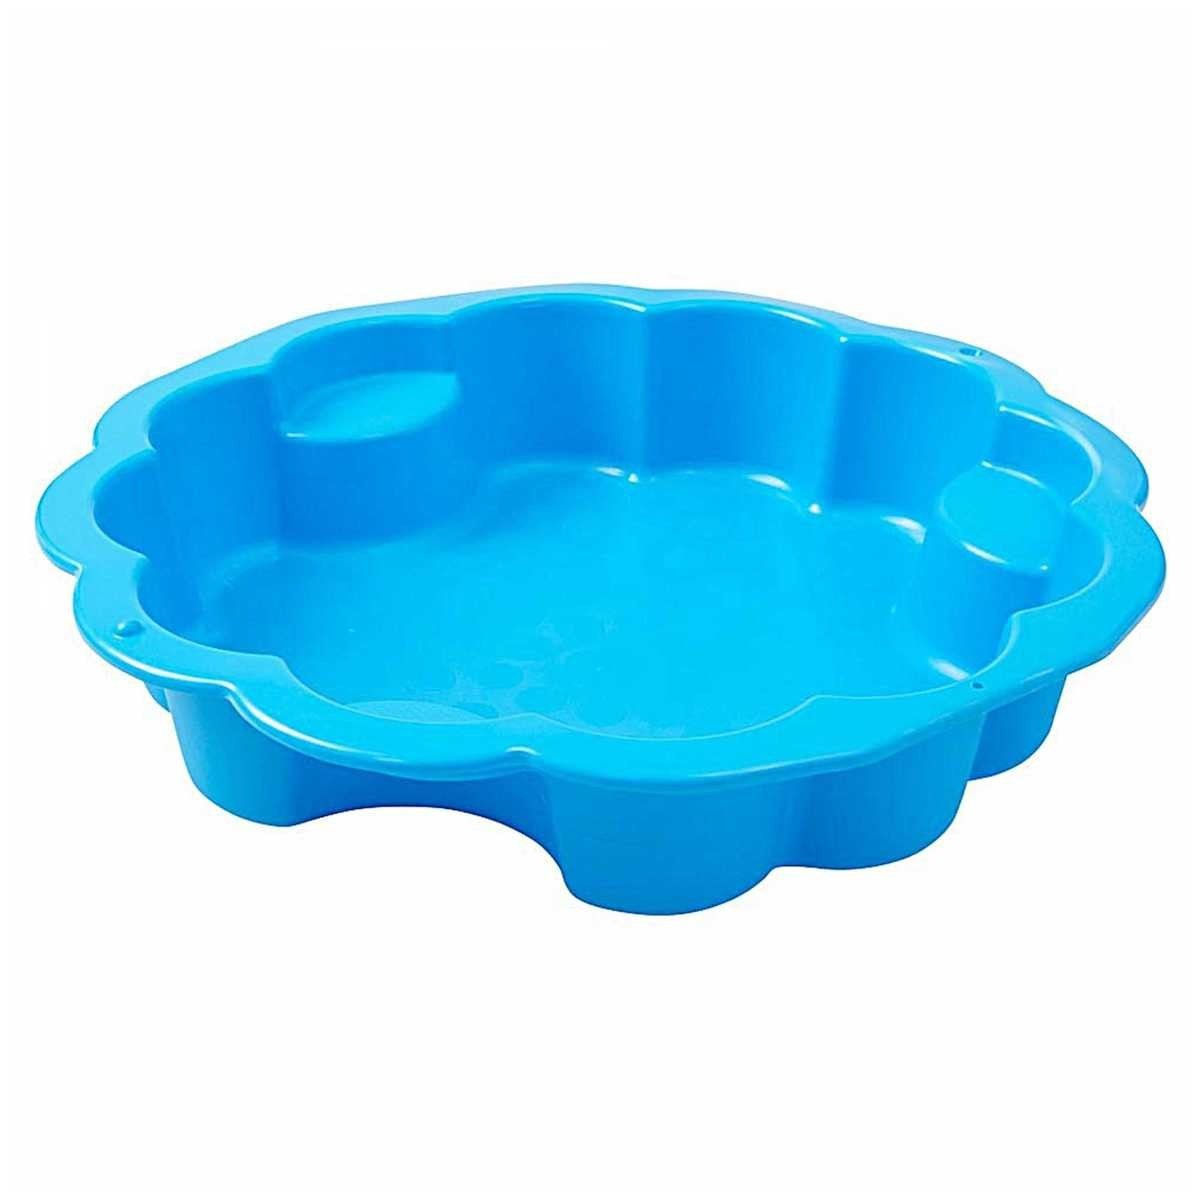 Big W Sand Pit Fountain Multi Purpose Play Shell Big W